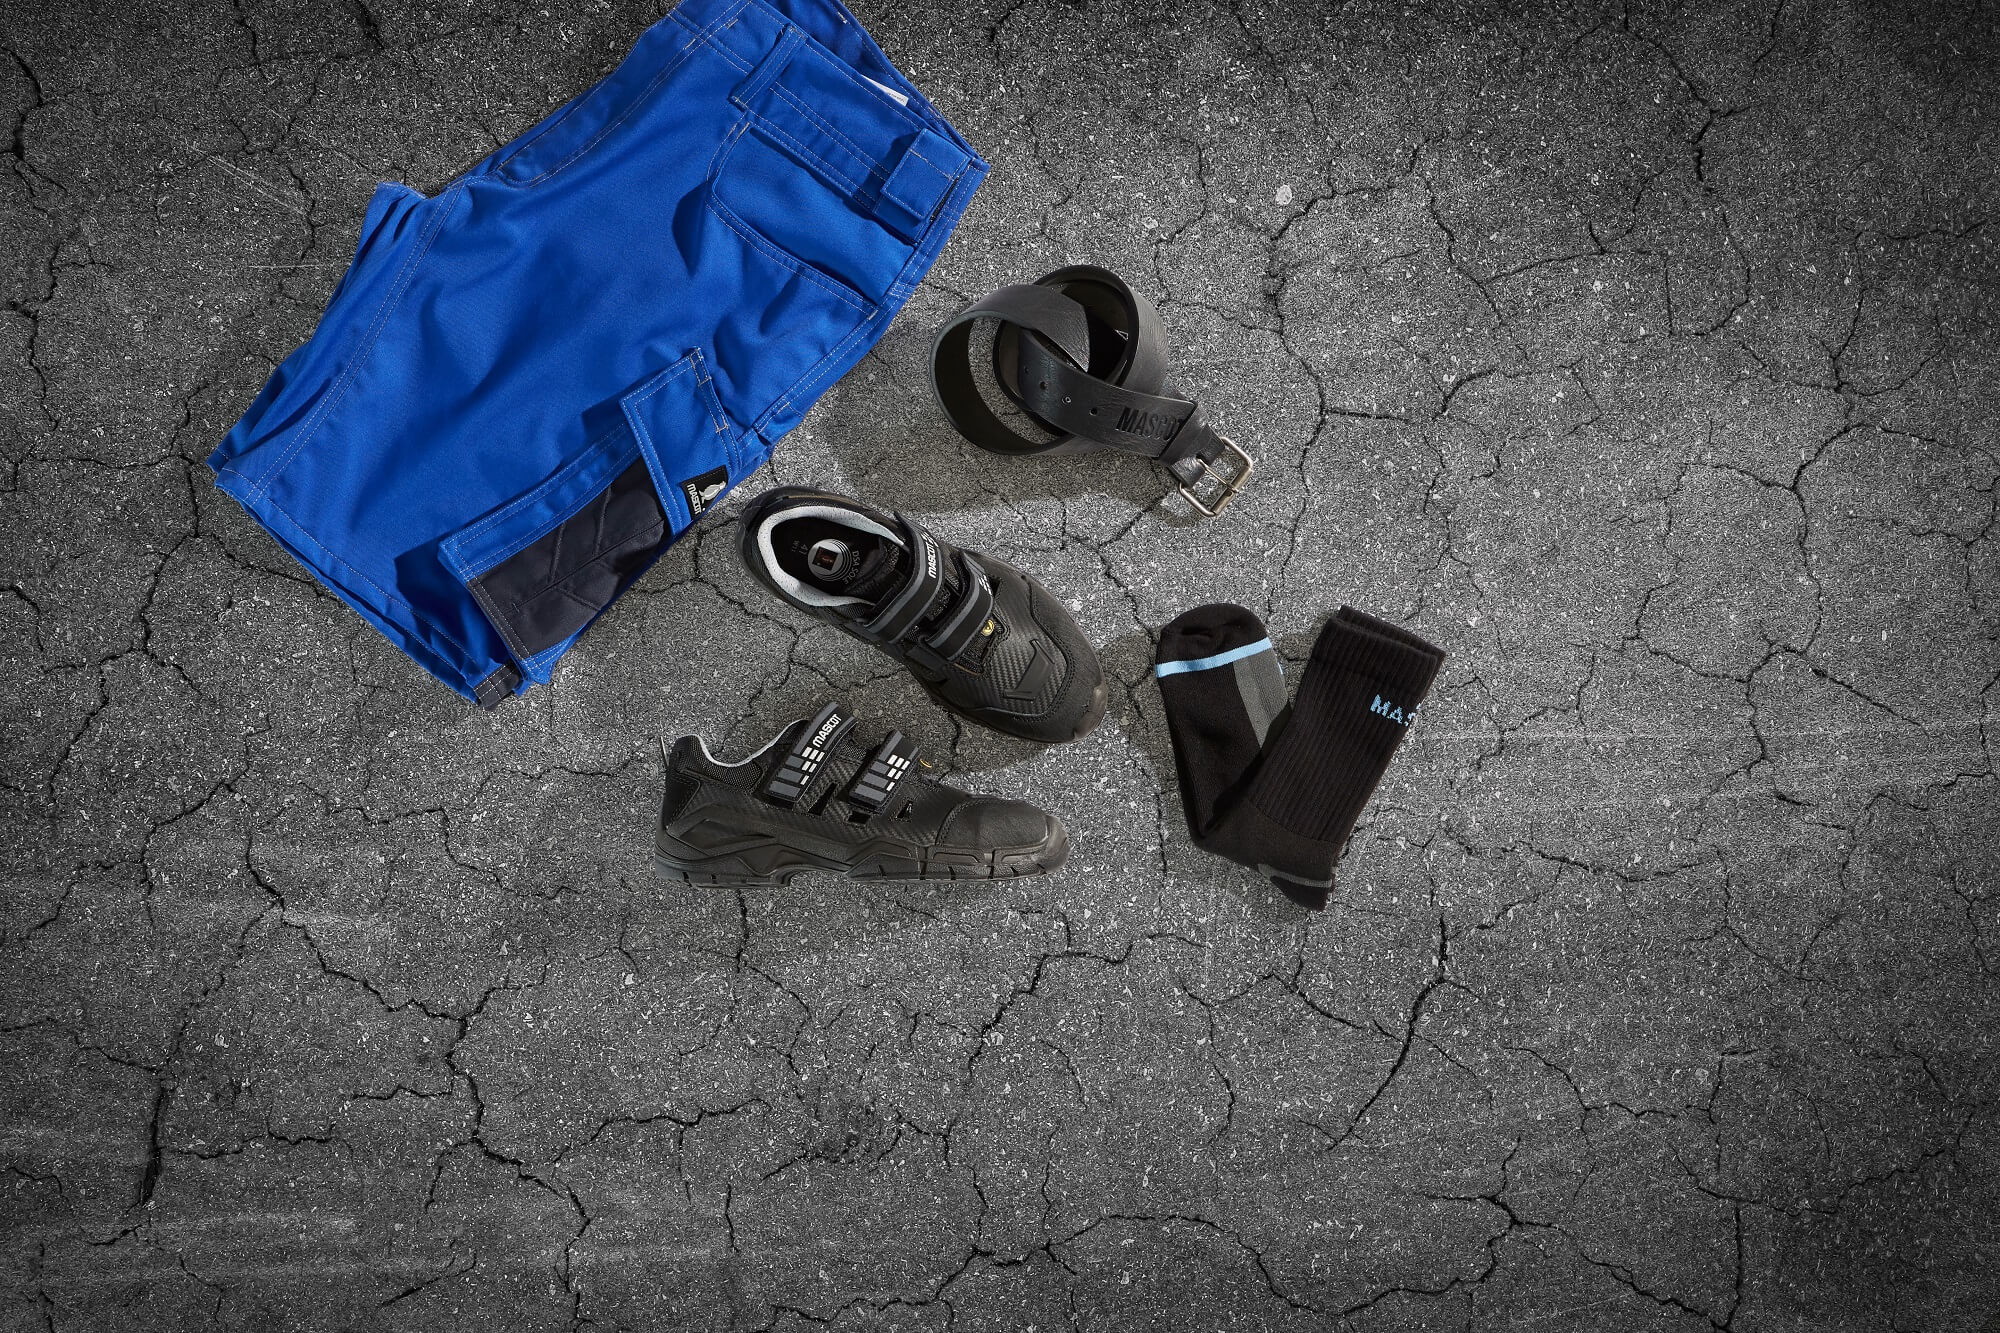 Work Pants Royal blue & Safety Shoe - Collage